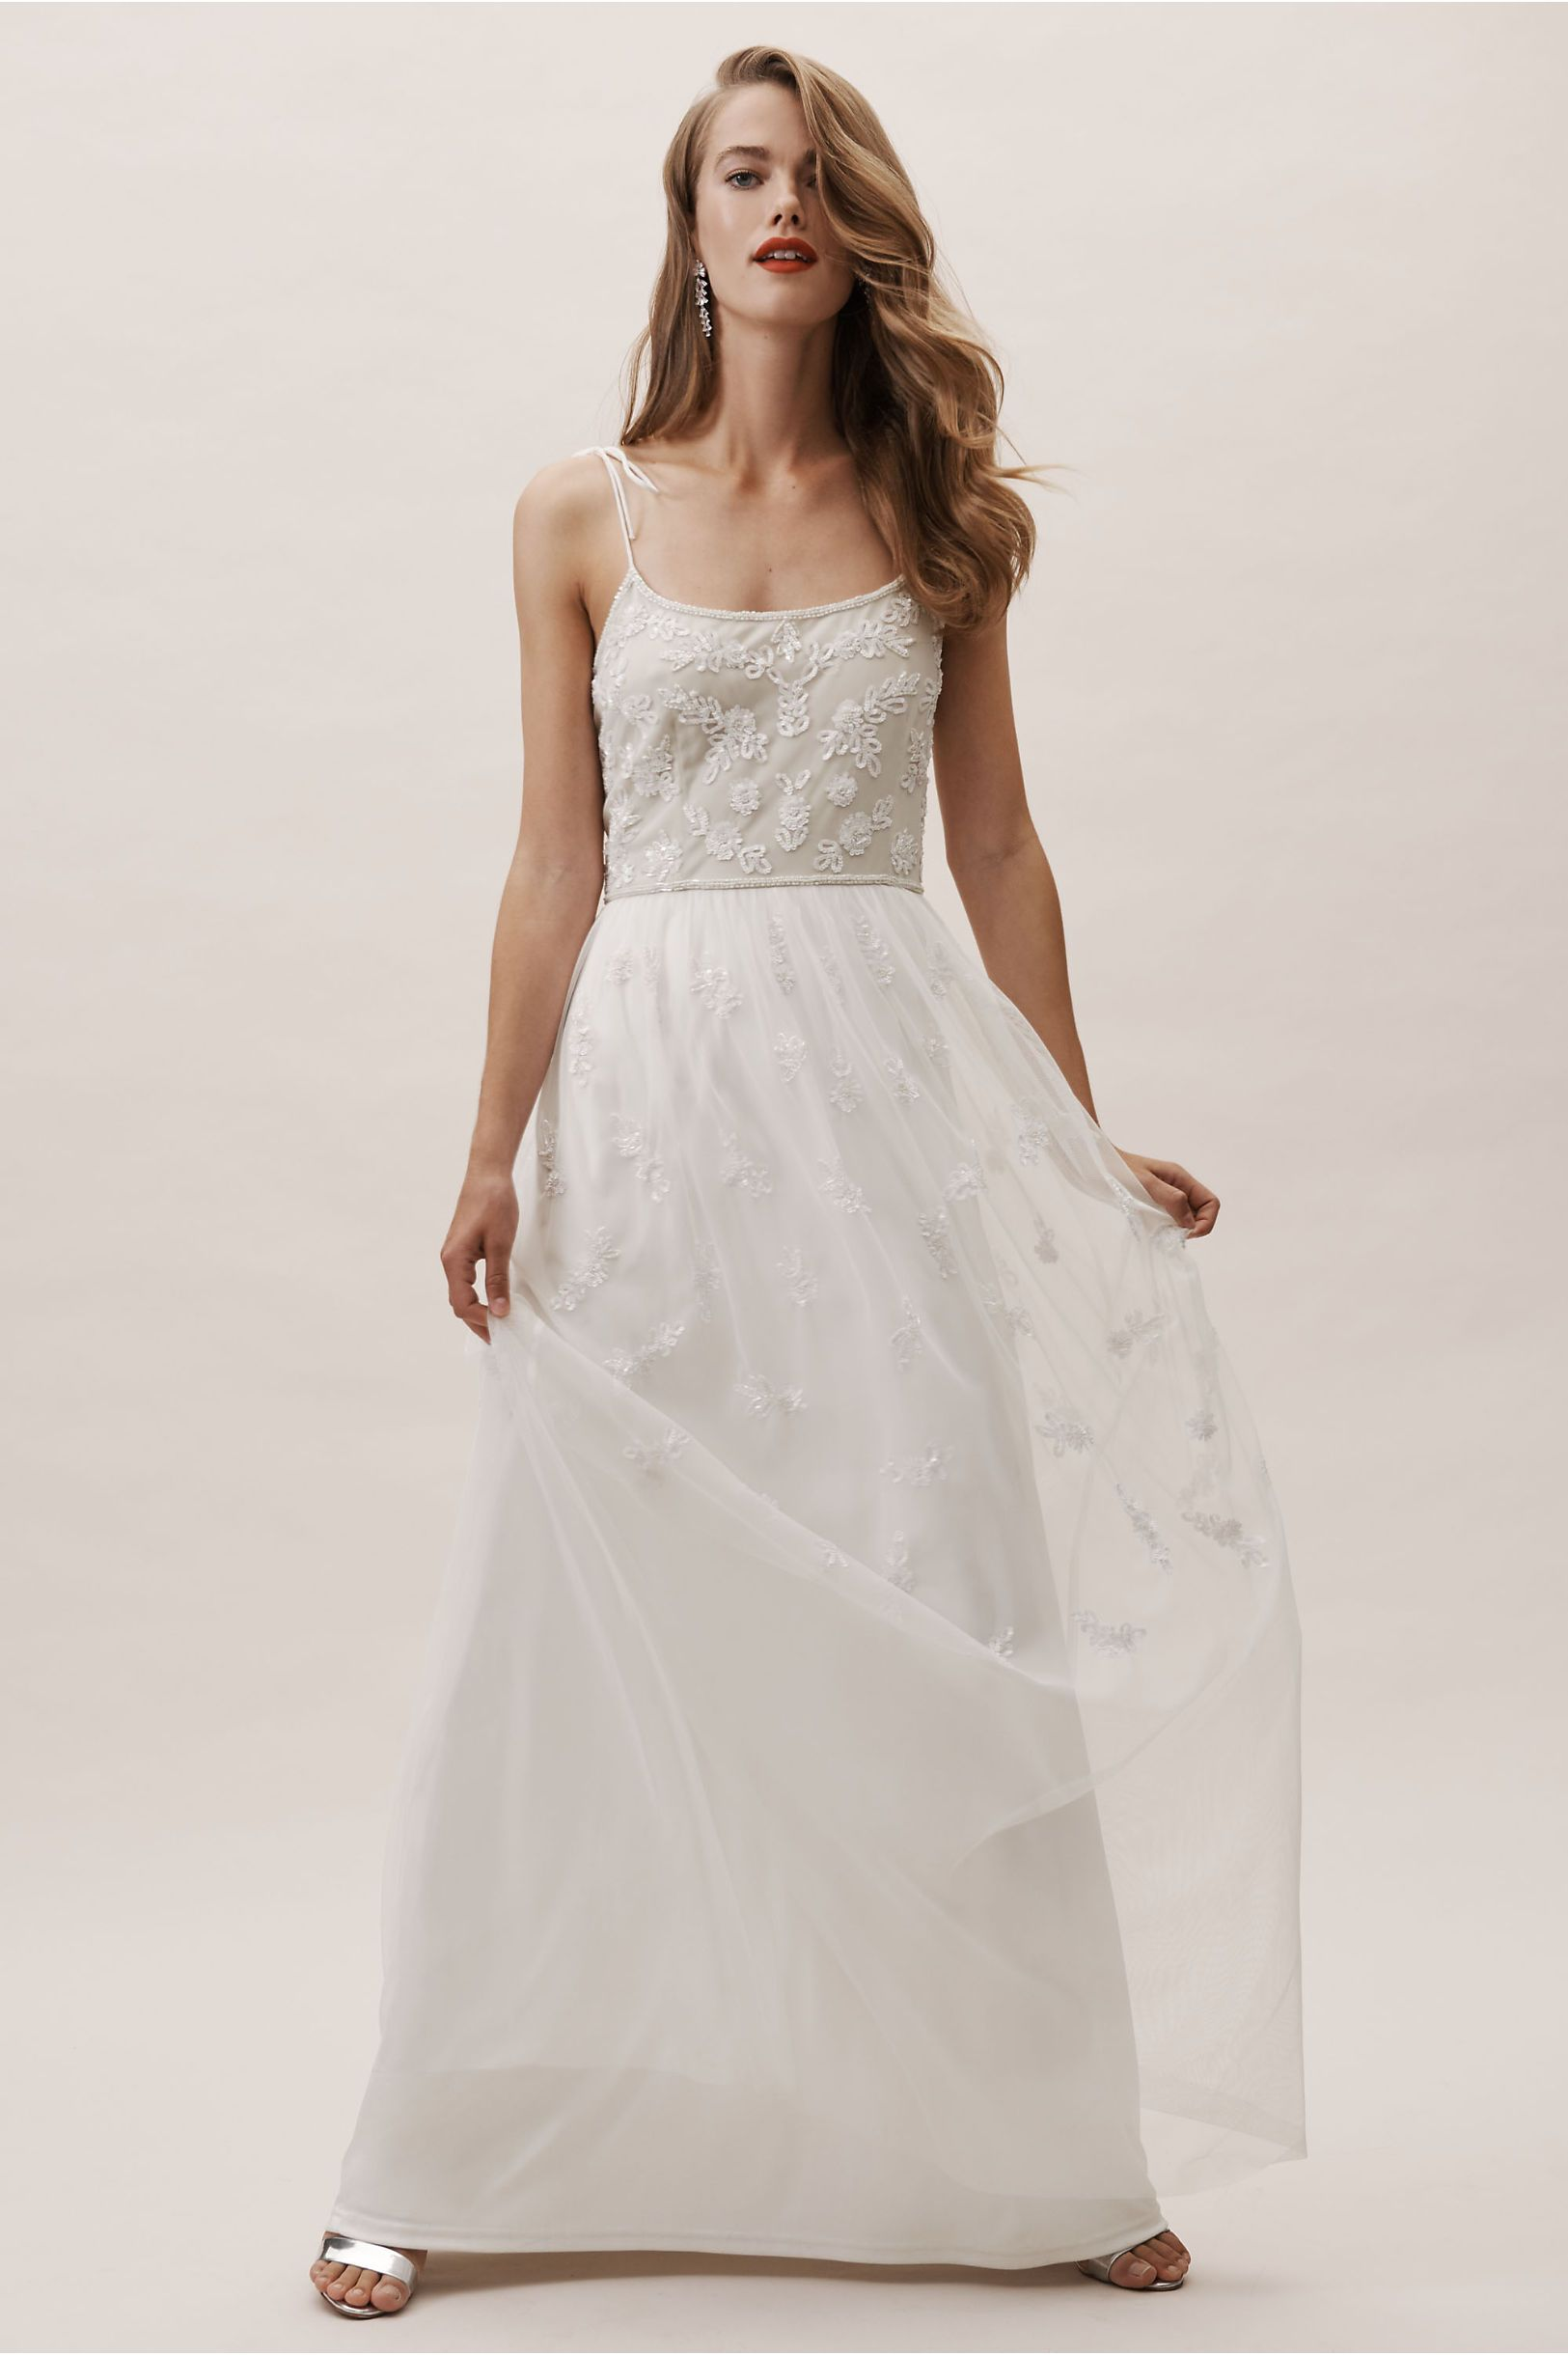 610661cbdd82 BHLDN's Adrianna Papell Marshall Dress in Ivory/nude | Products ...